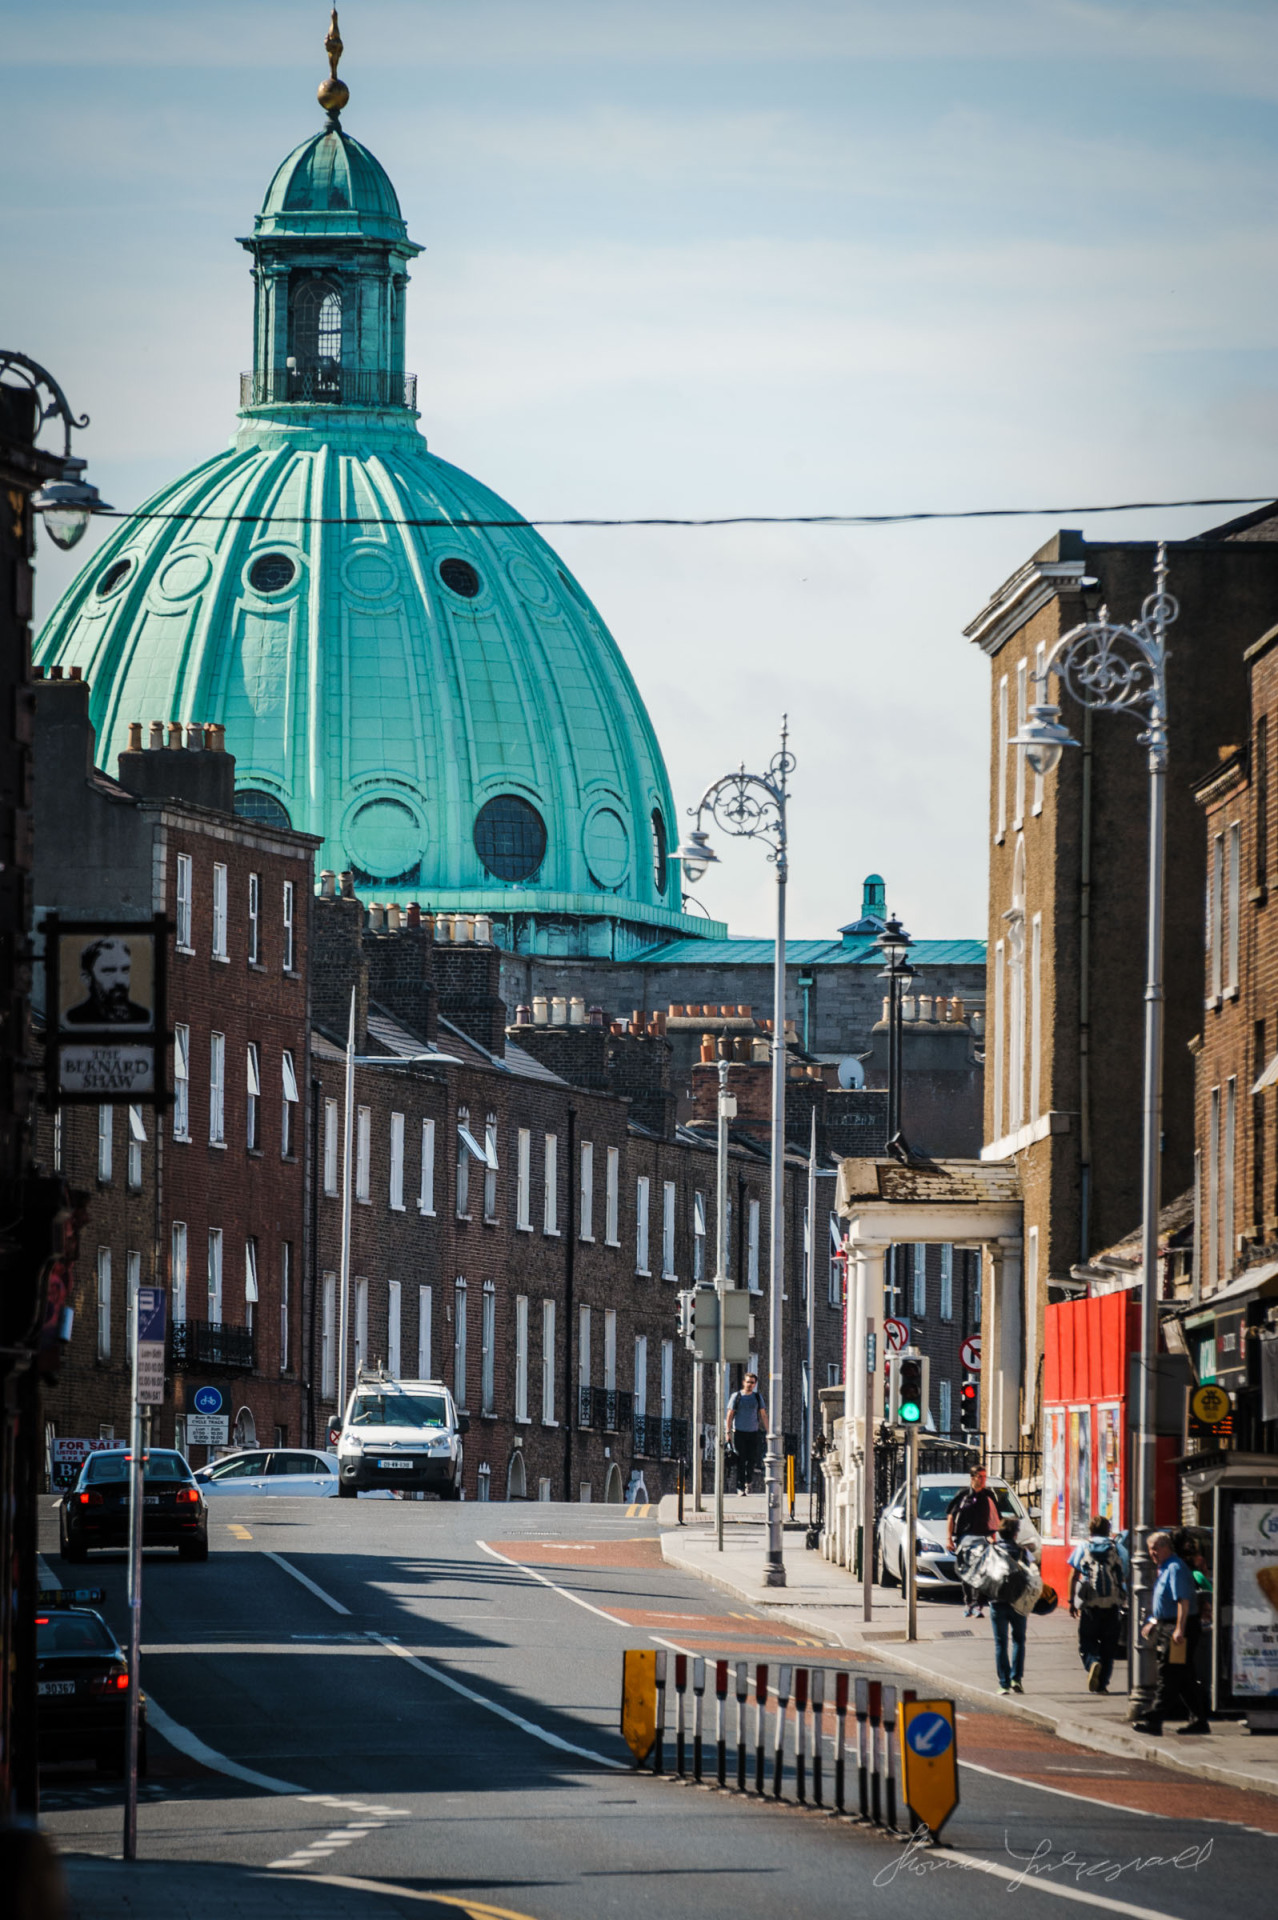 Green dome from church in Rathmines